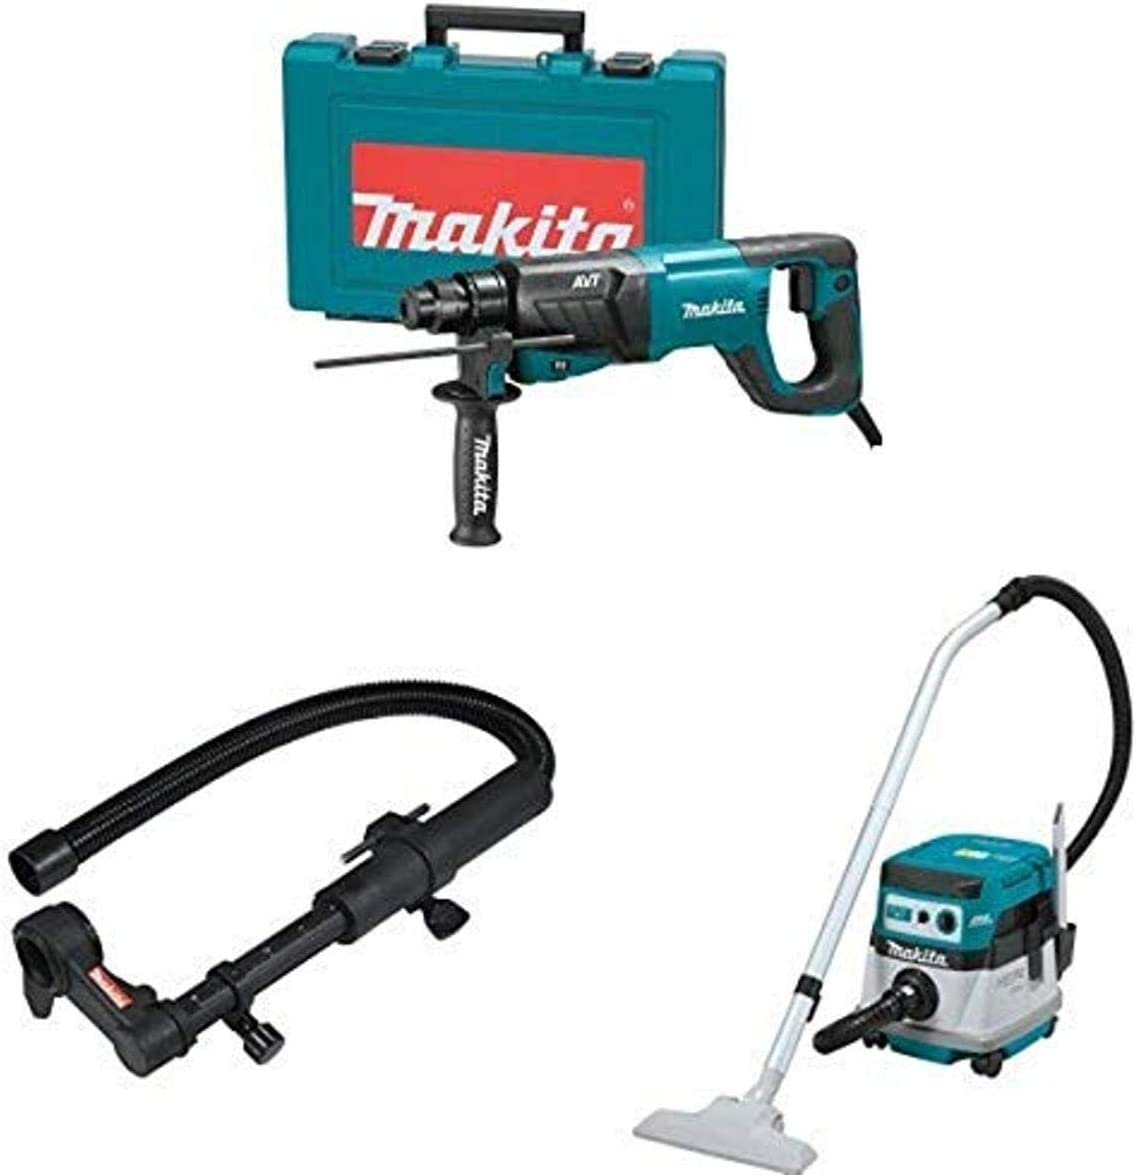 Makita HR2641 1-Inch AVT Rotary accepts Hammer SDS-PLUS bits Spring new work 2021new shipping free D